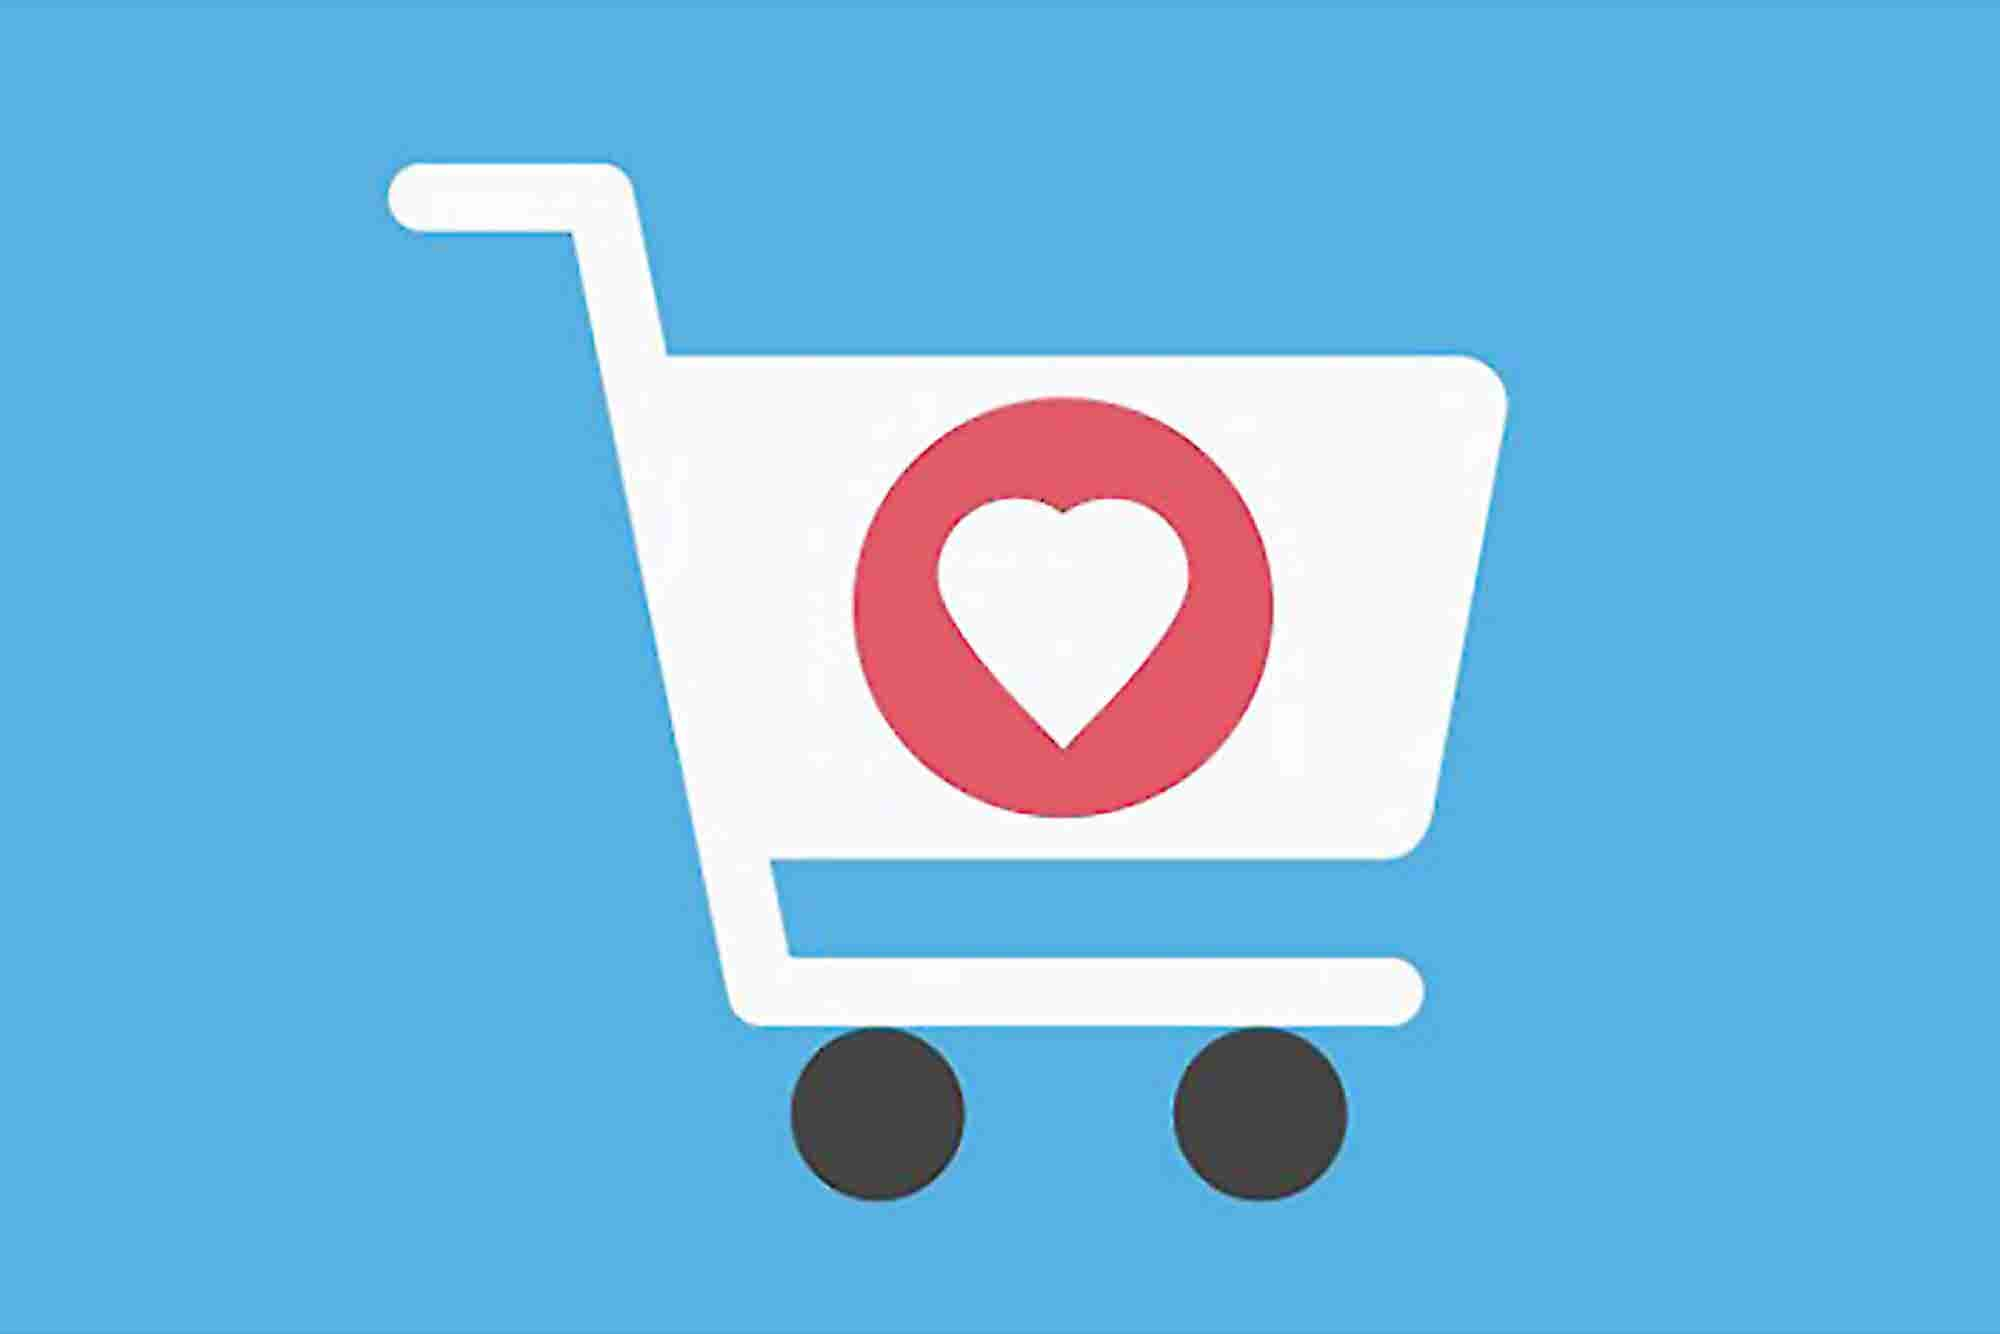 5 Uncommon Ways to Win a Customer's Heart